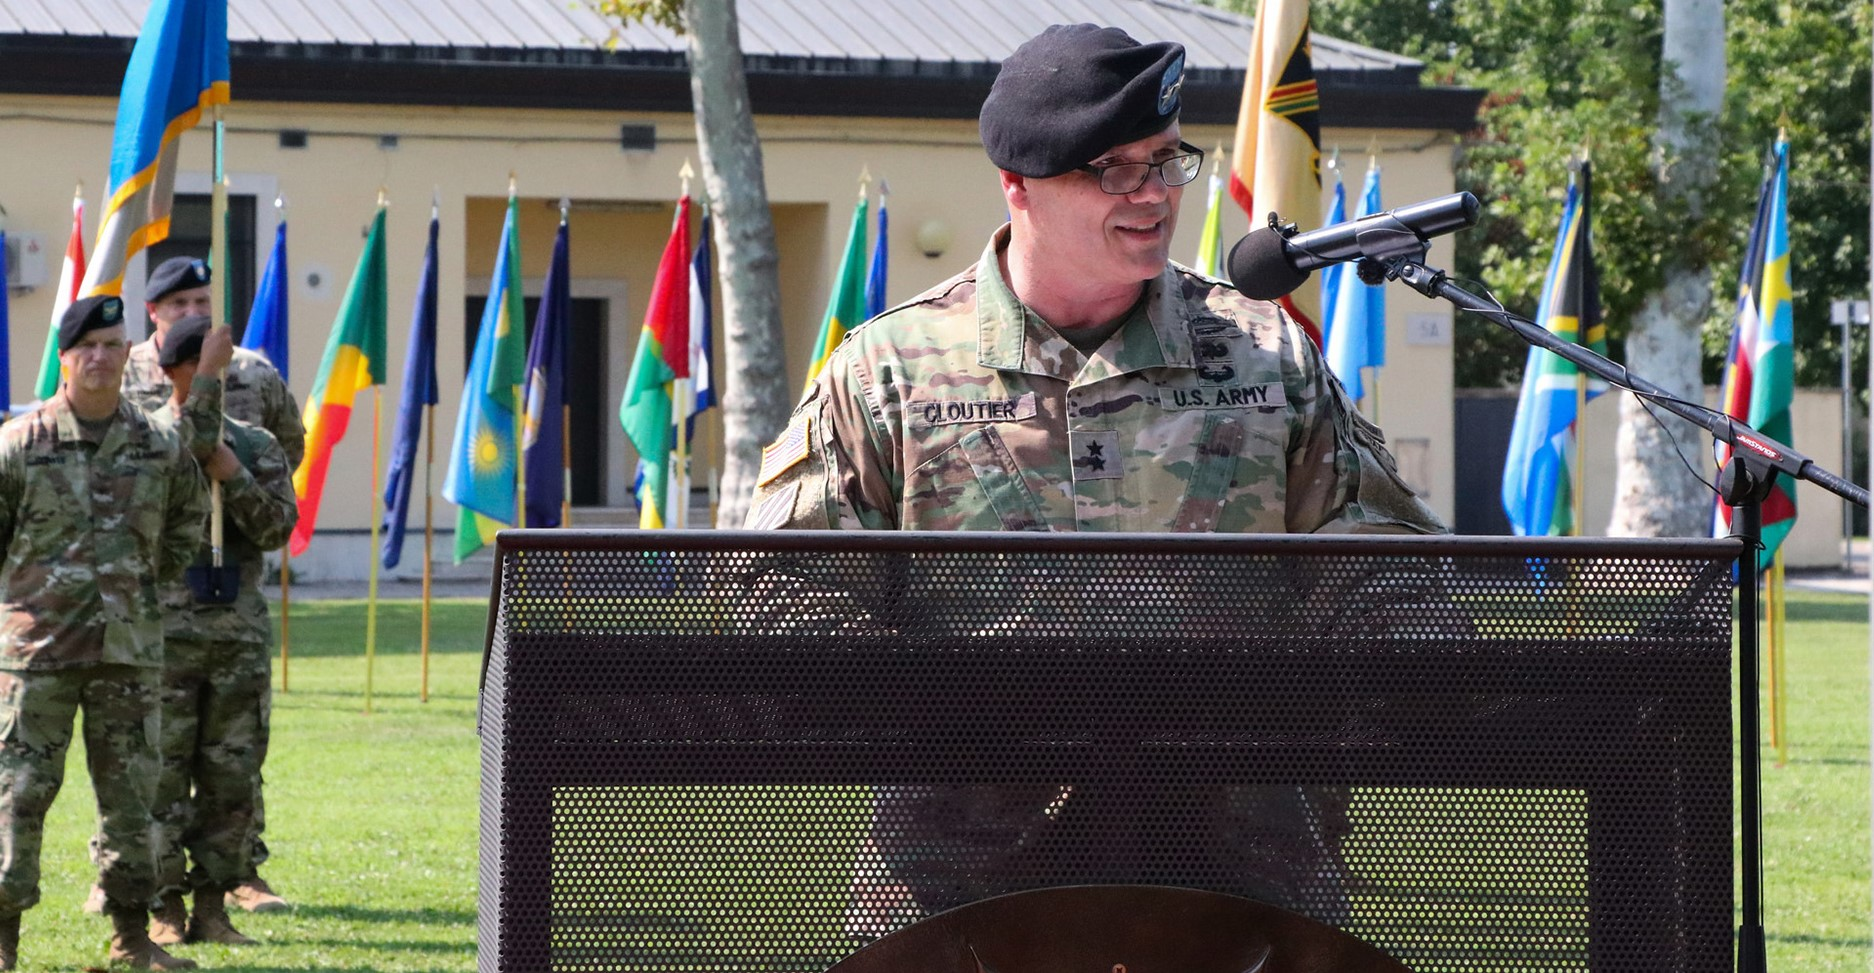 U.S. Army Africa Commanding General Maj. Gen. Roger L. Cloutier Jr. delivers his remarks at the USARAF change of command ceremony held at Caserma Ederle in Vicenza, Italy, Aug. 2, 2018. (U.S. Army photo by Sgt. Jennifer Garza)